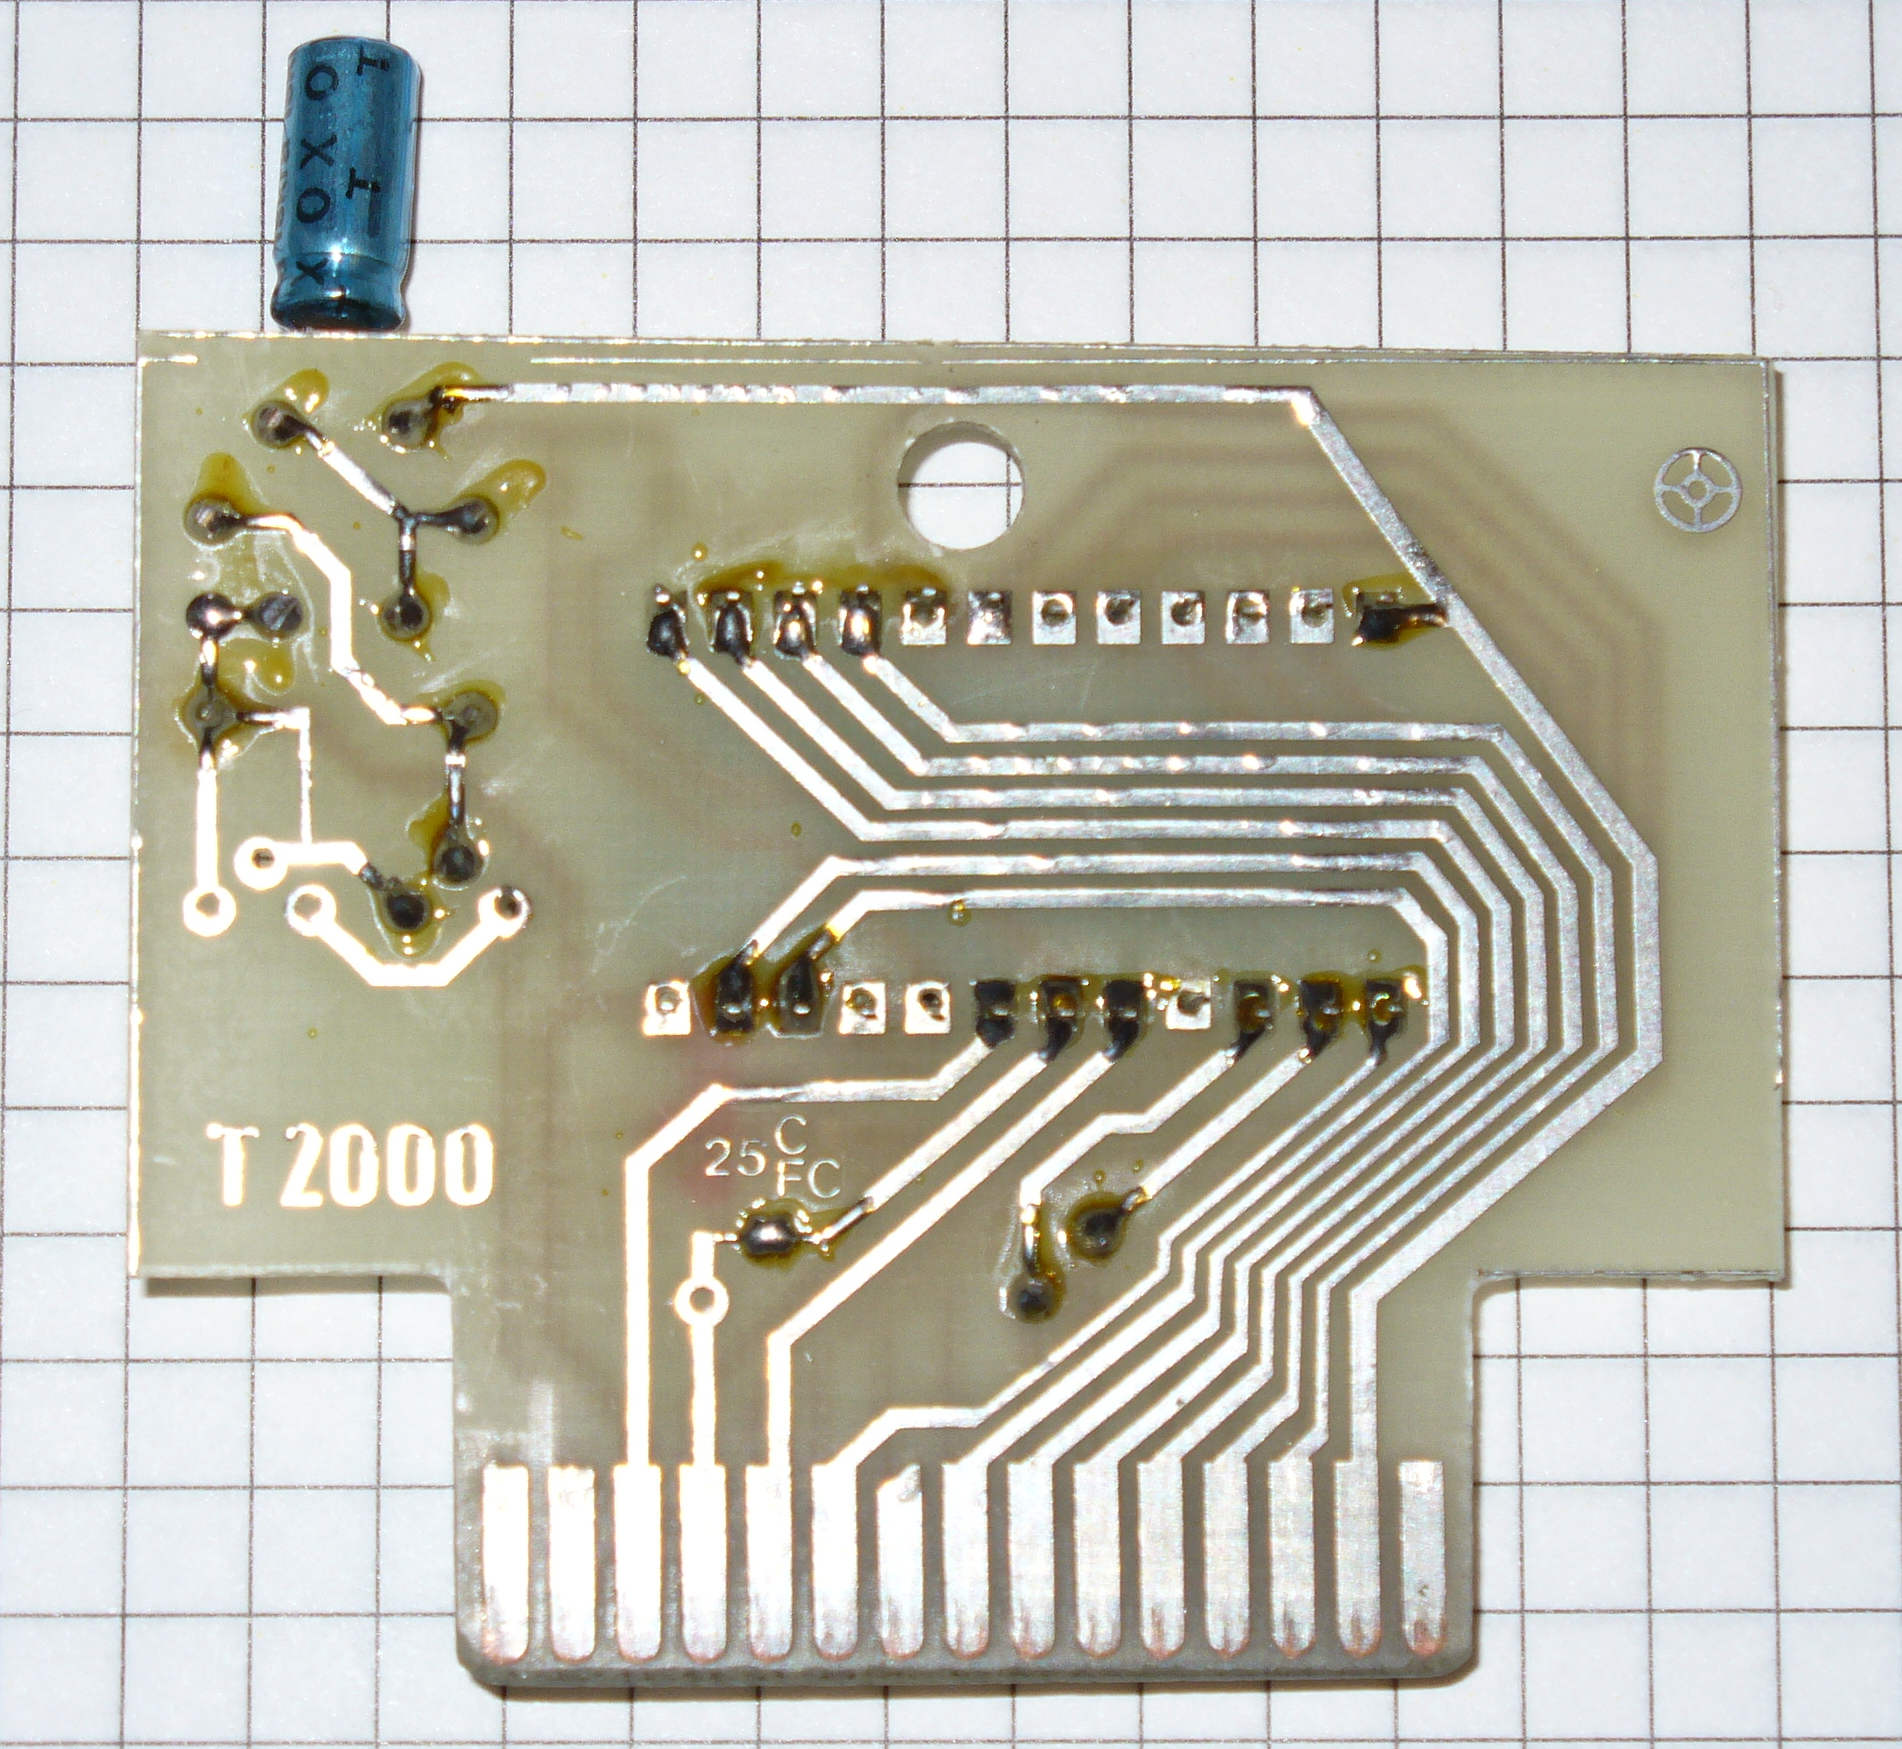 http://seban.pigwa.net/uicr0bee/carts/Turbo2000F_copy/Turbo2000F_copy_pcb_top.jpg